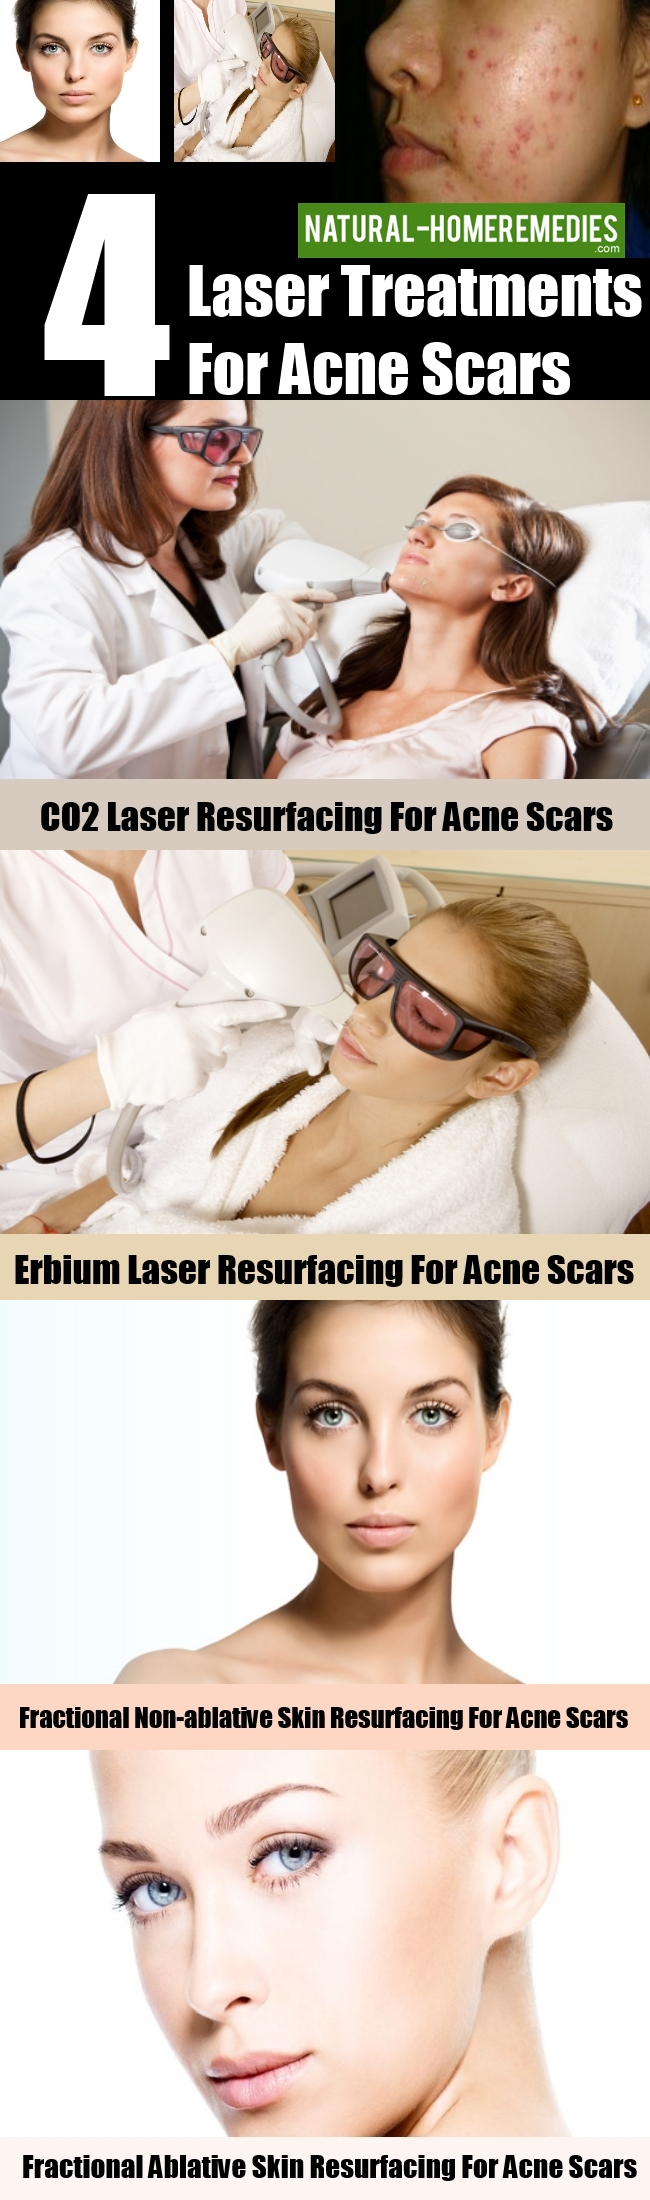 4 Laser Treatments For Acne Scars